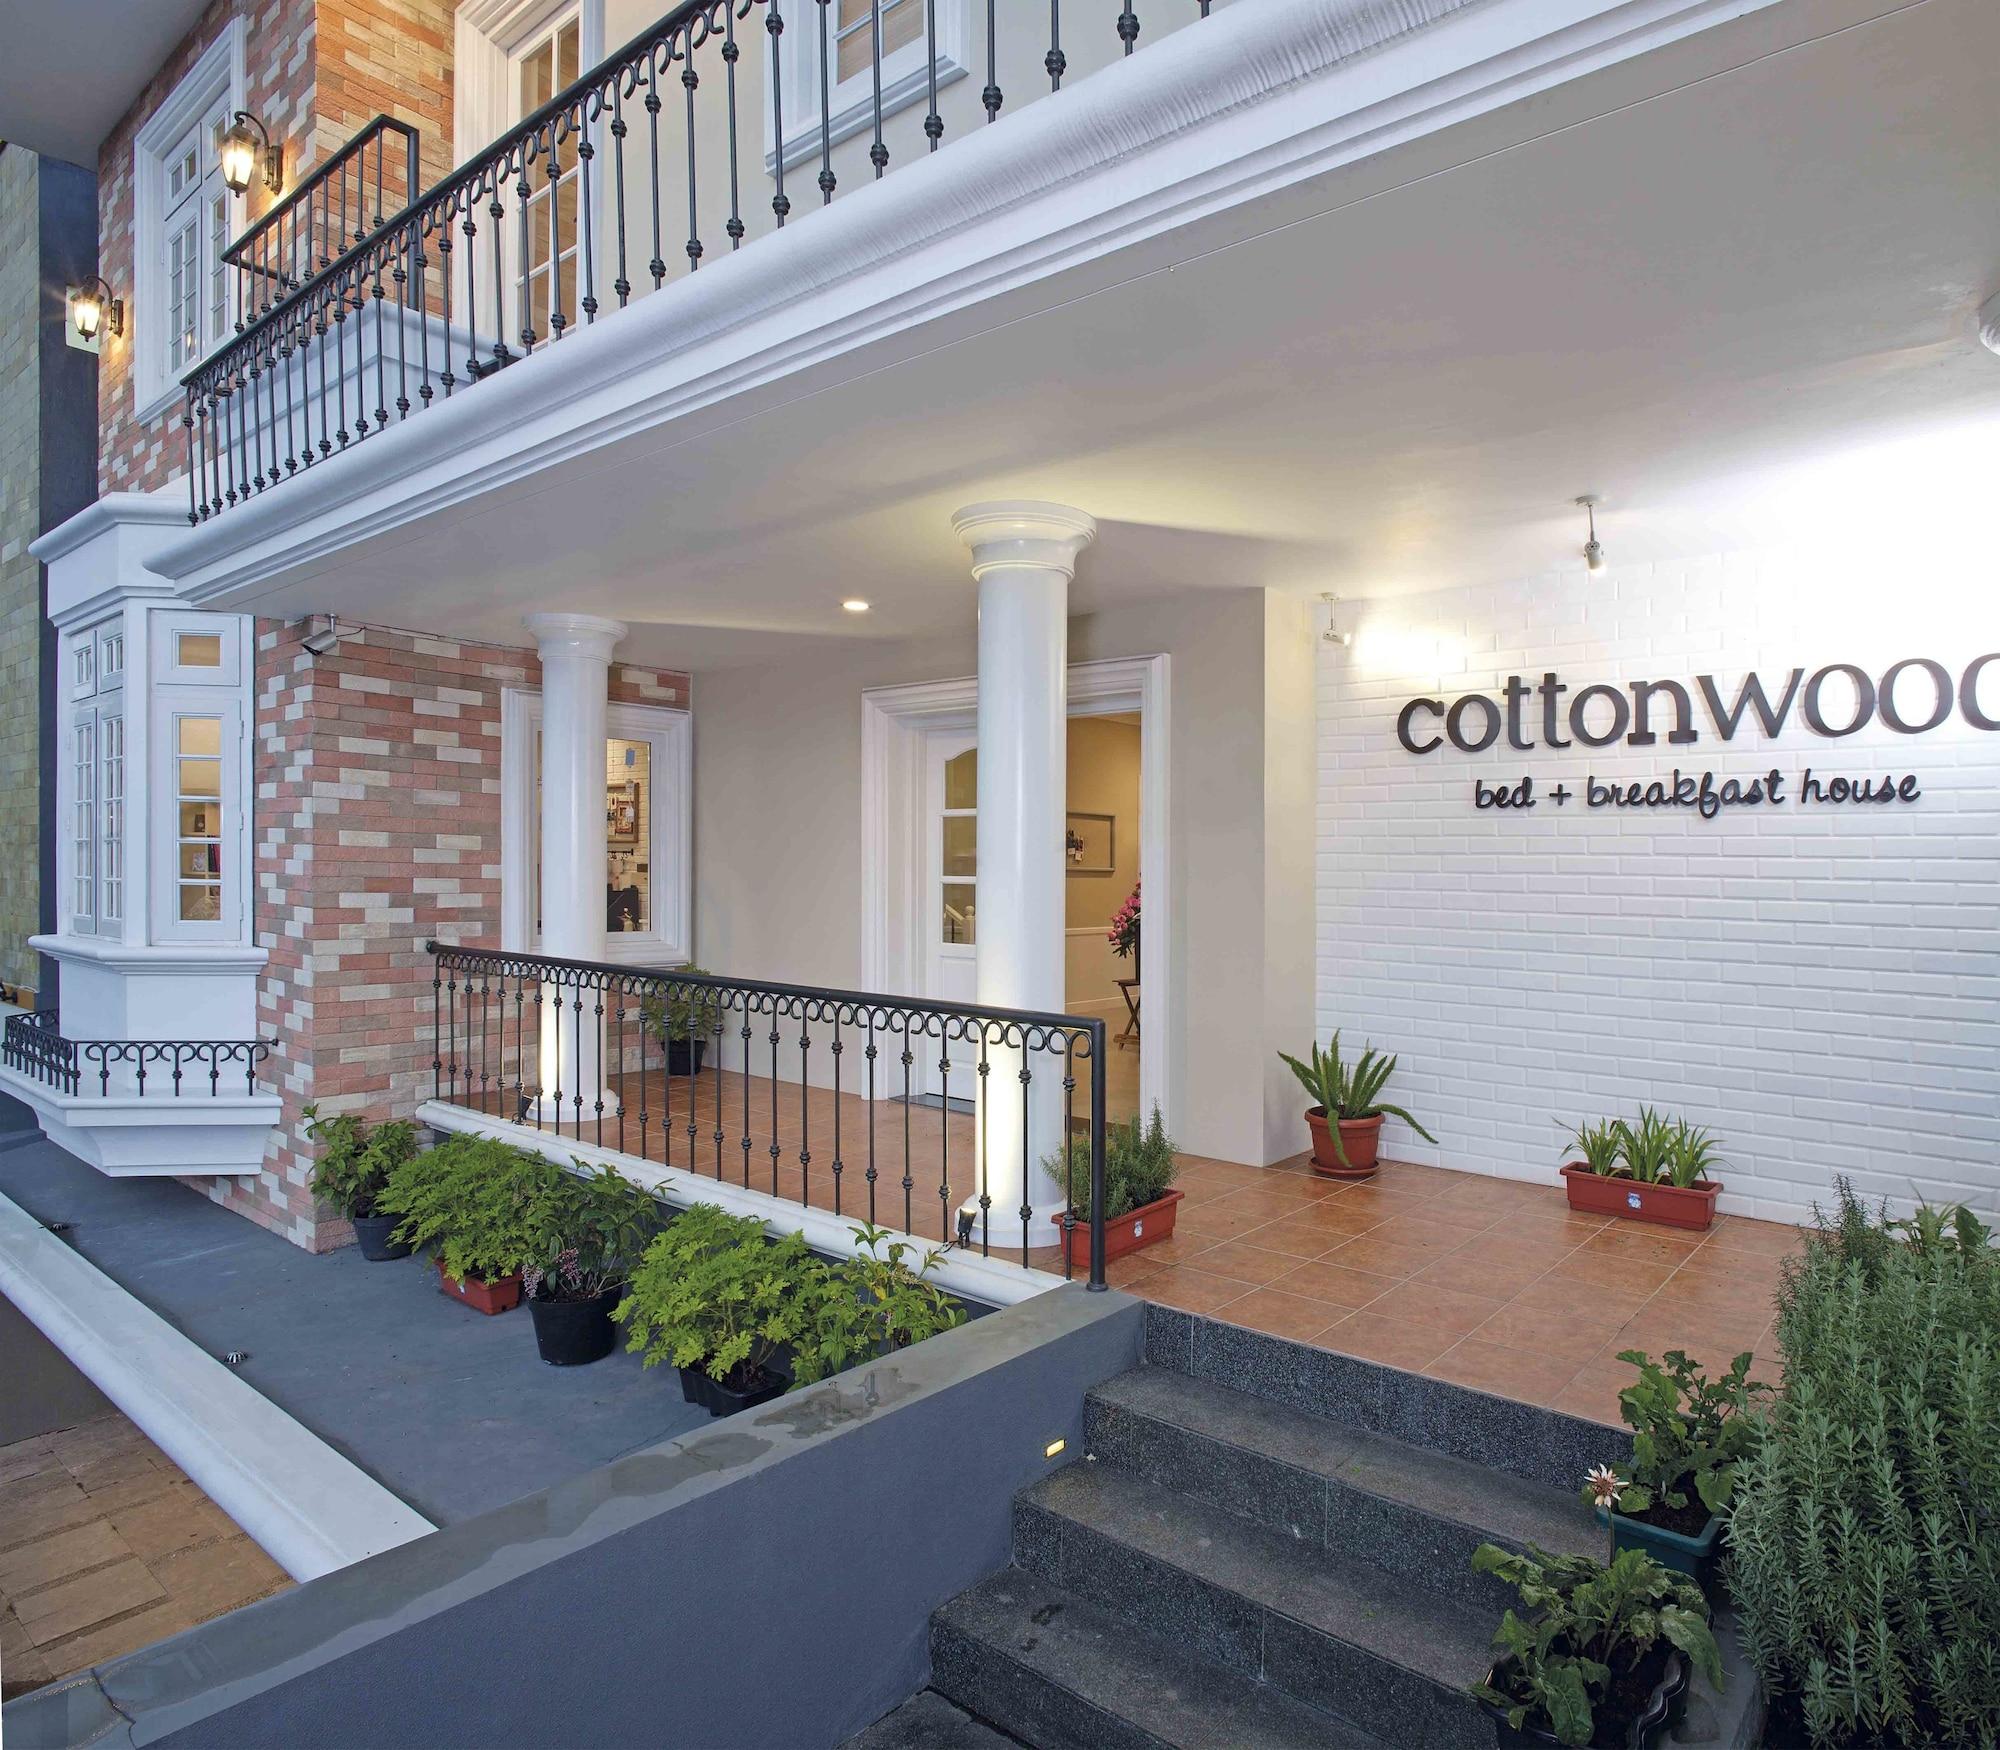 Cottonwood Bed & Breakfast House, Bandung